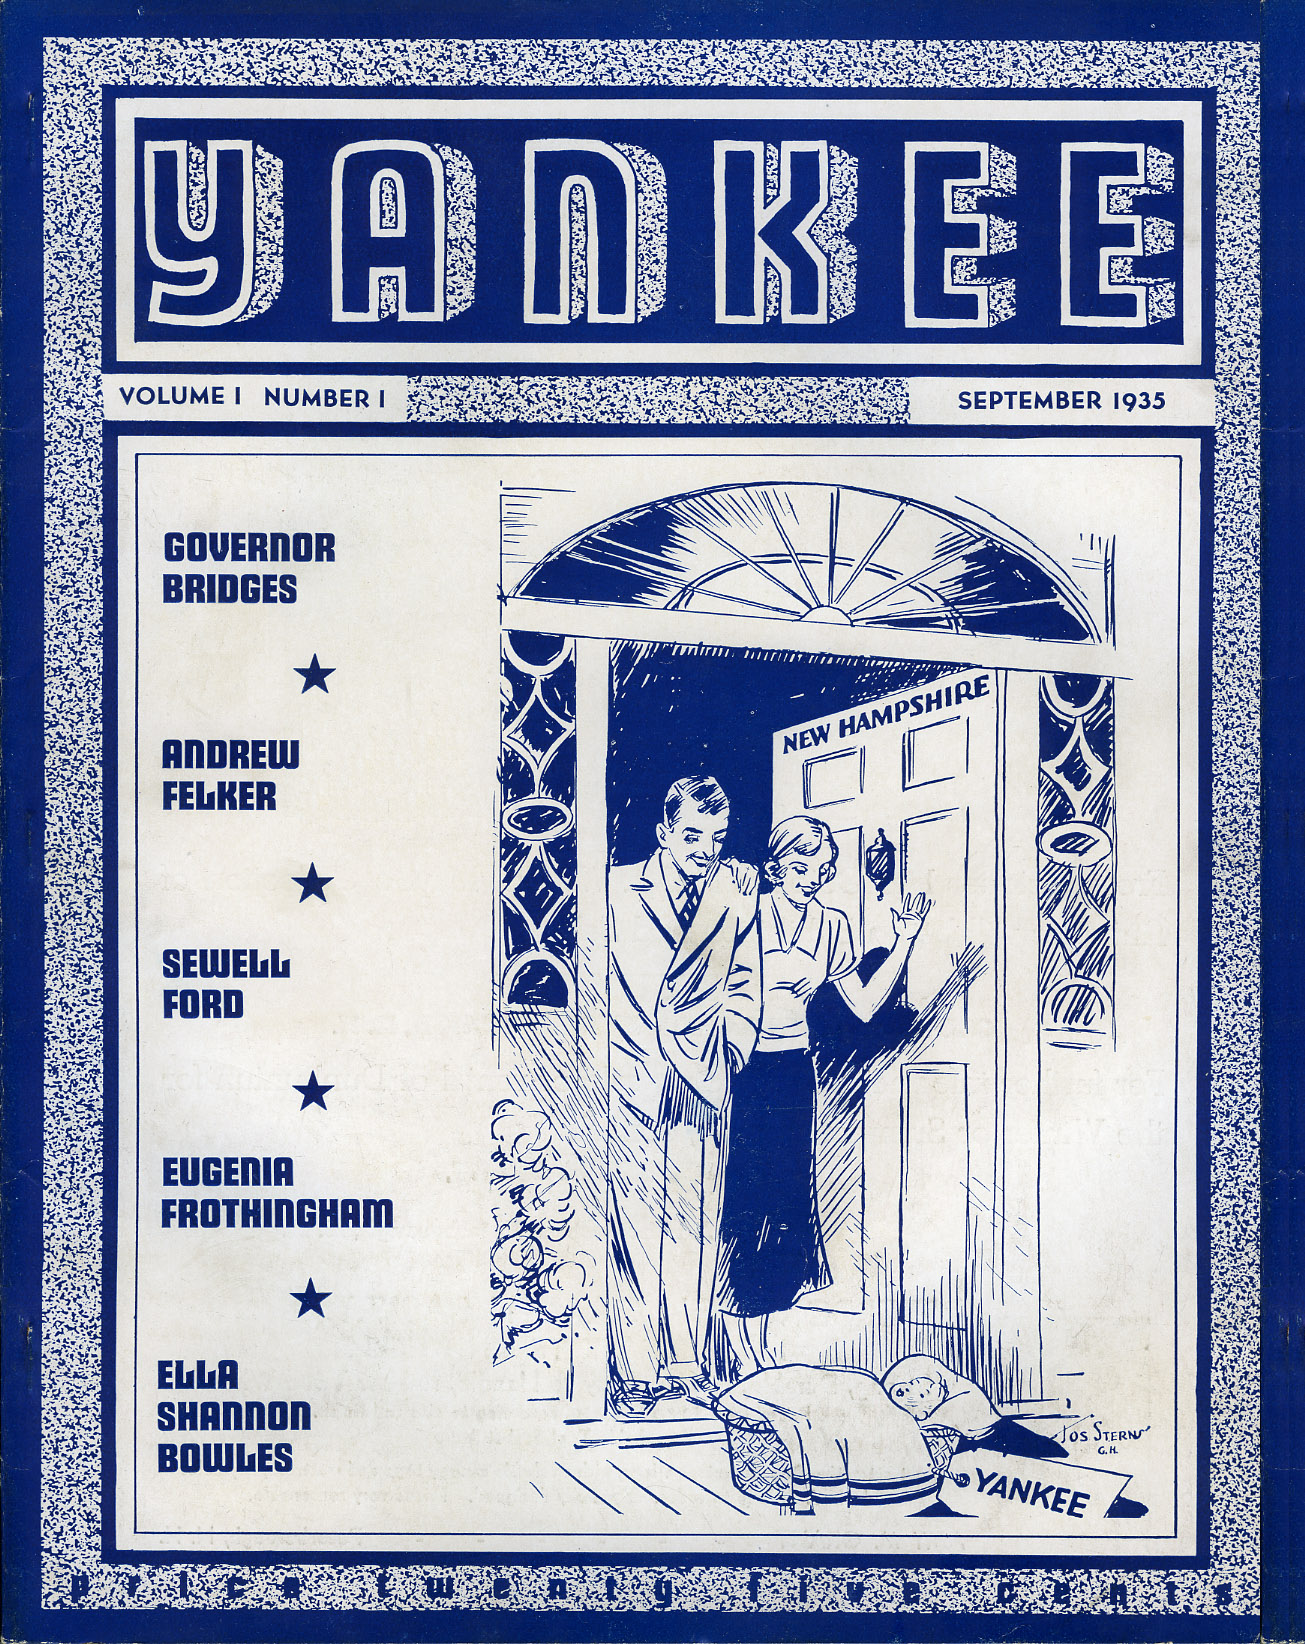 Image of First issue of Yankee Magazine